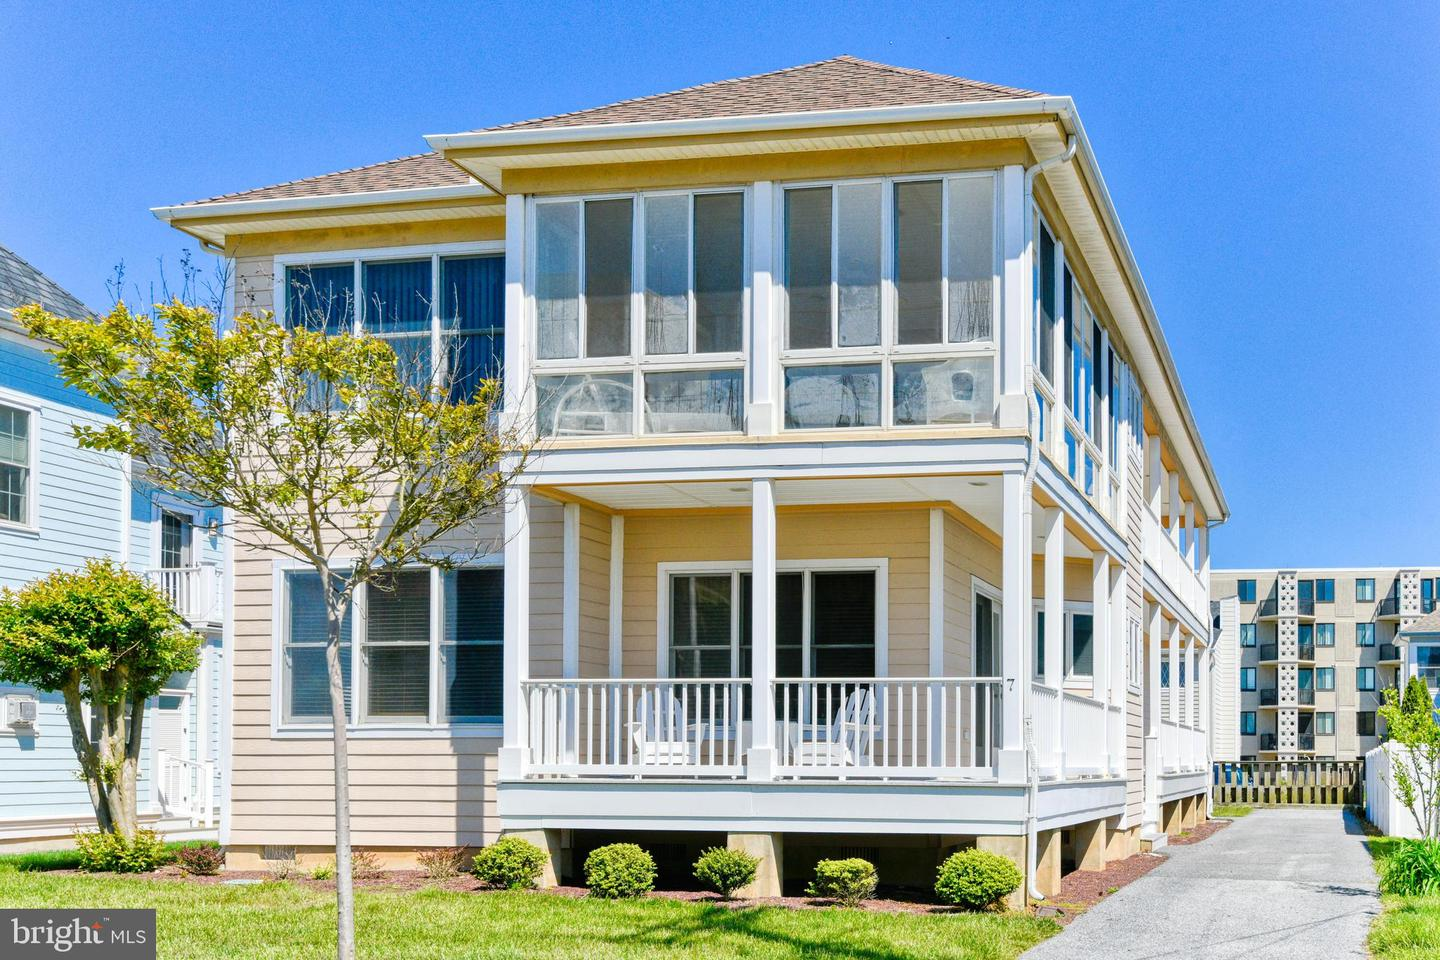 DESU140752-301729565743-2019-05-20-15-11-27 7 Olive Ave | Rehoboth Beach, DE Real Estate For Sale | MLS# Desu140752  - Coldwell Banker Resort Realty